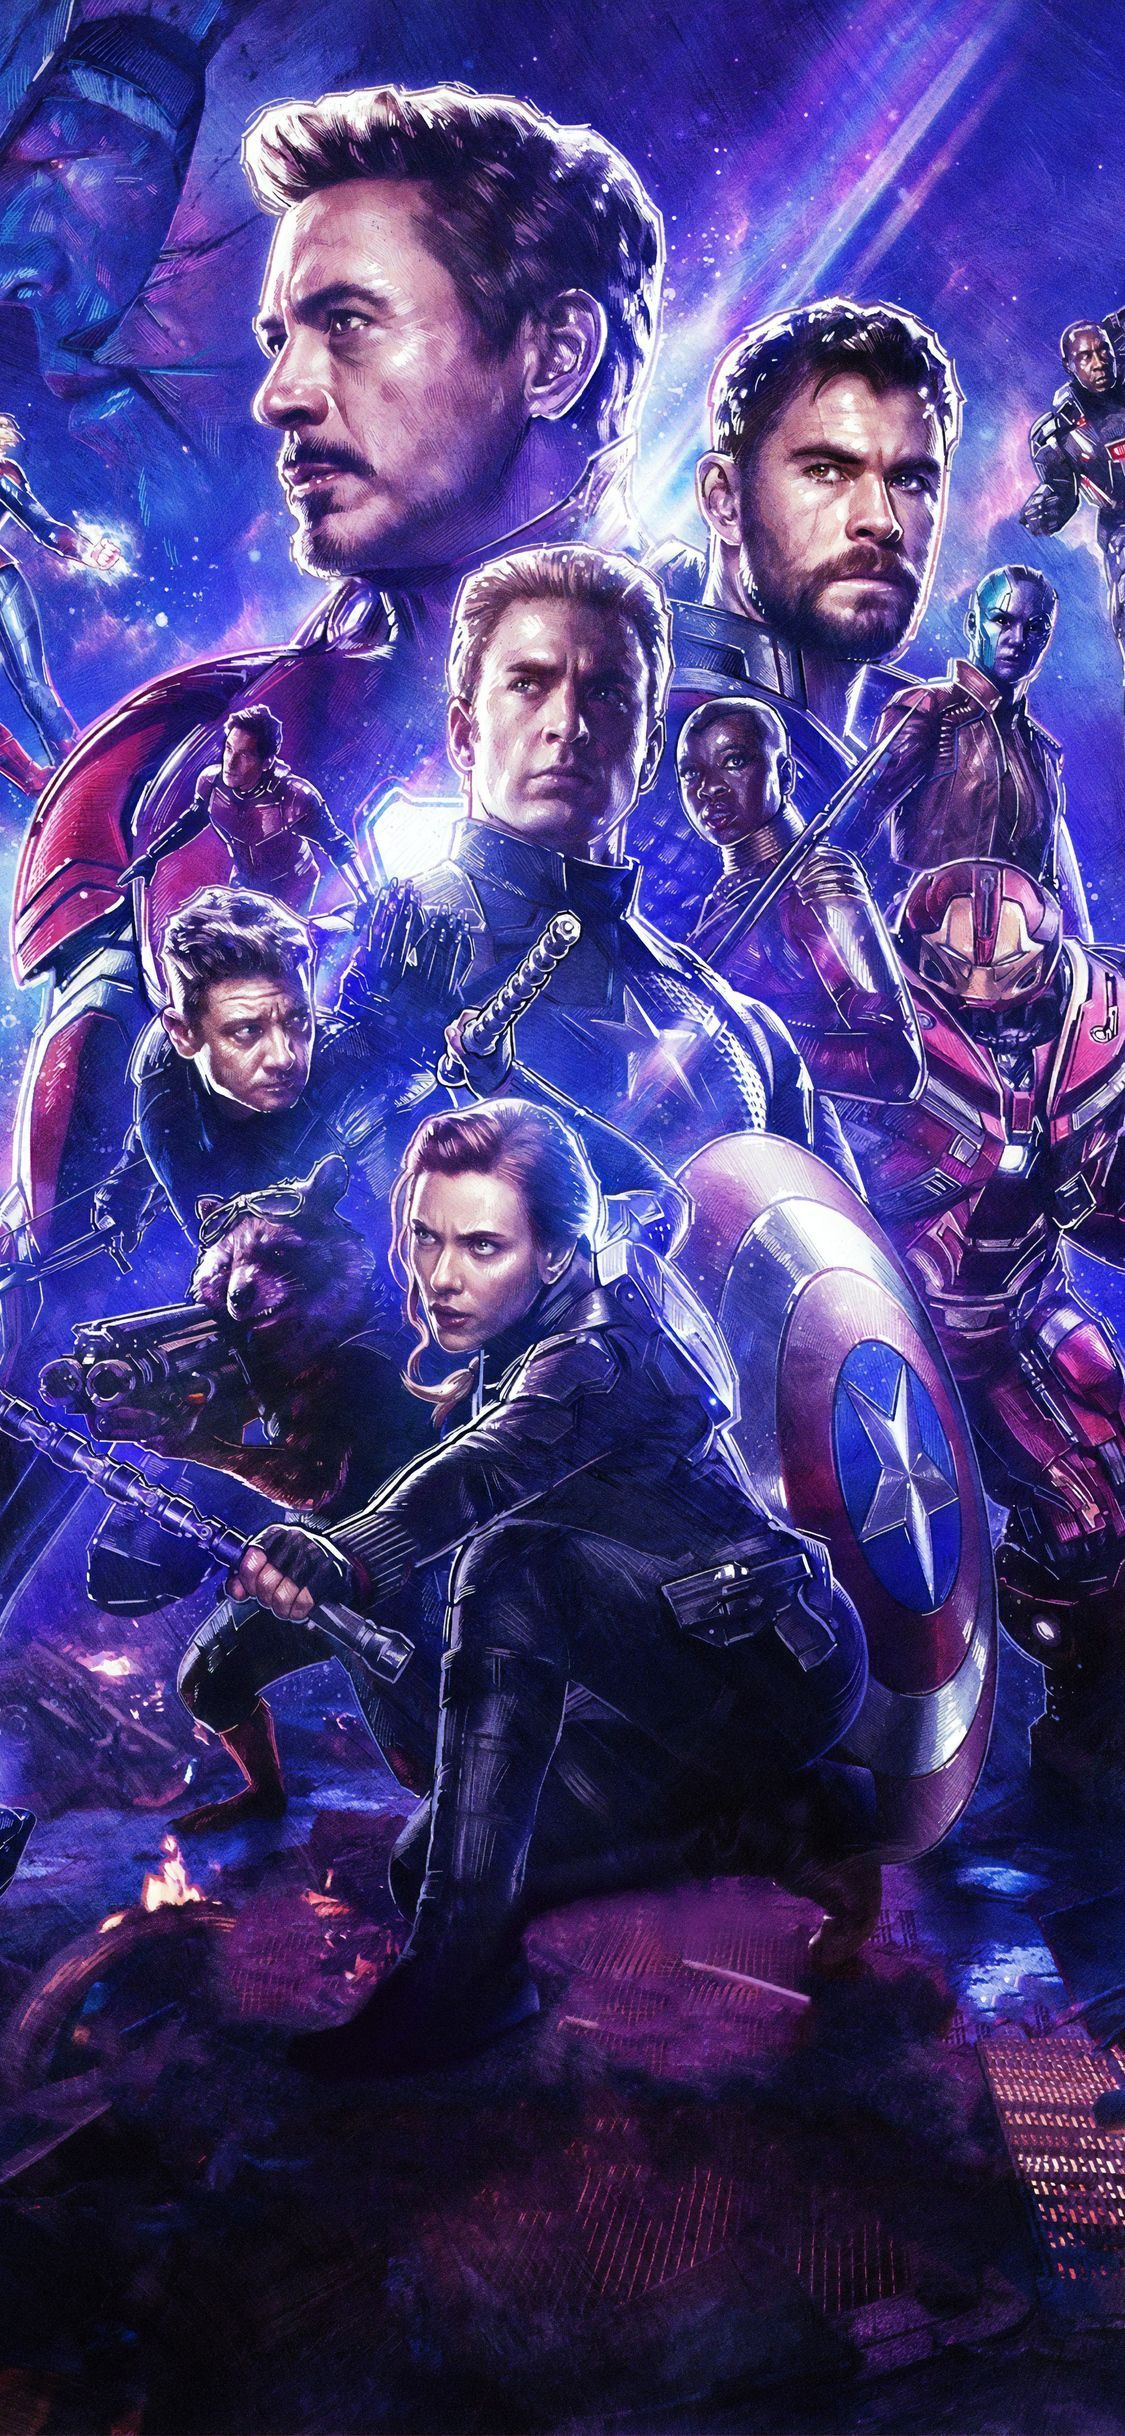 Avengers Endgame Wallpaper 4k Iphone In 2020 Superhelden Held